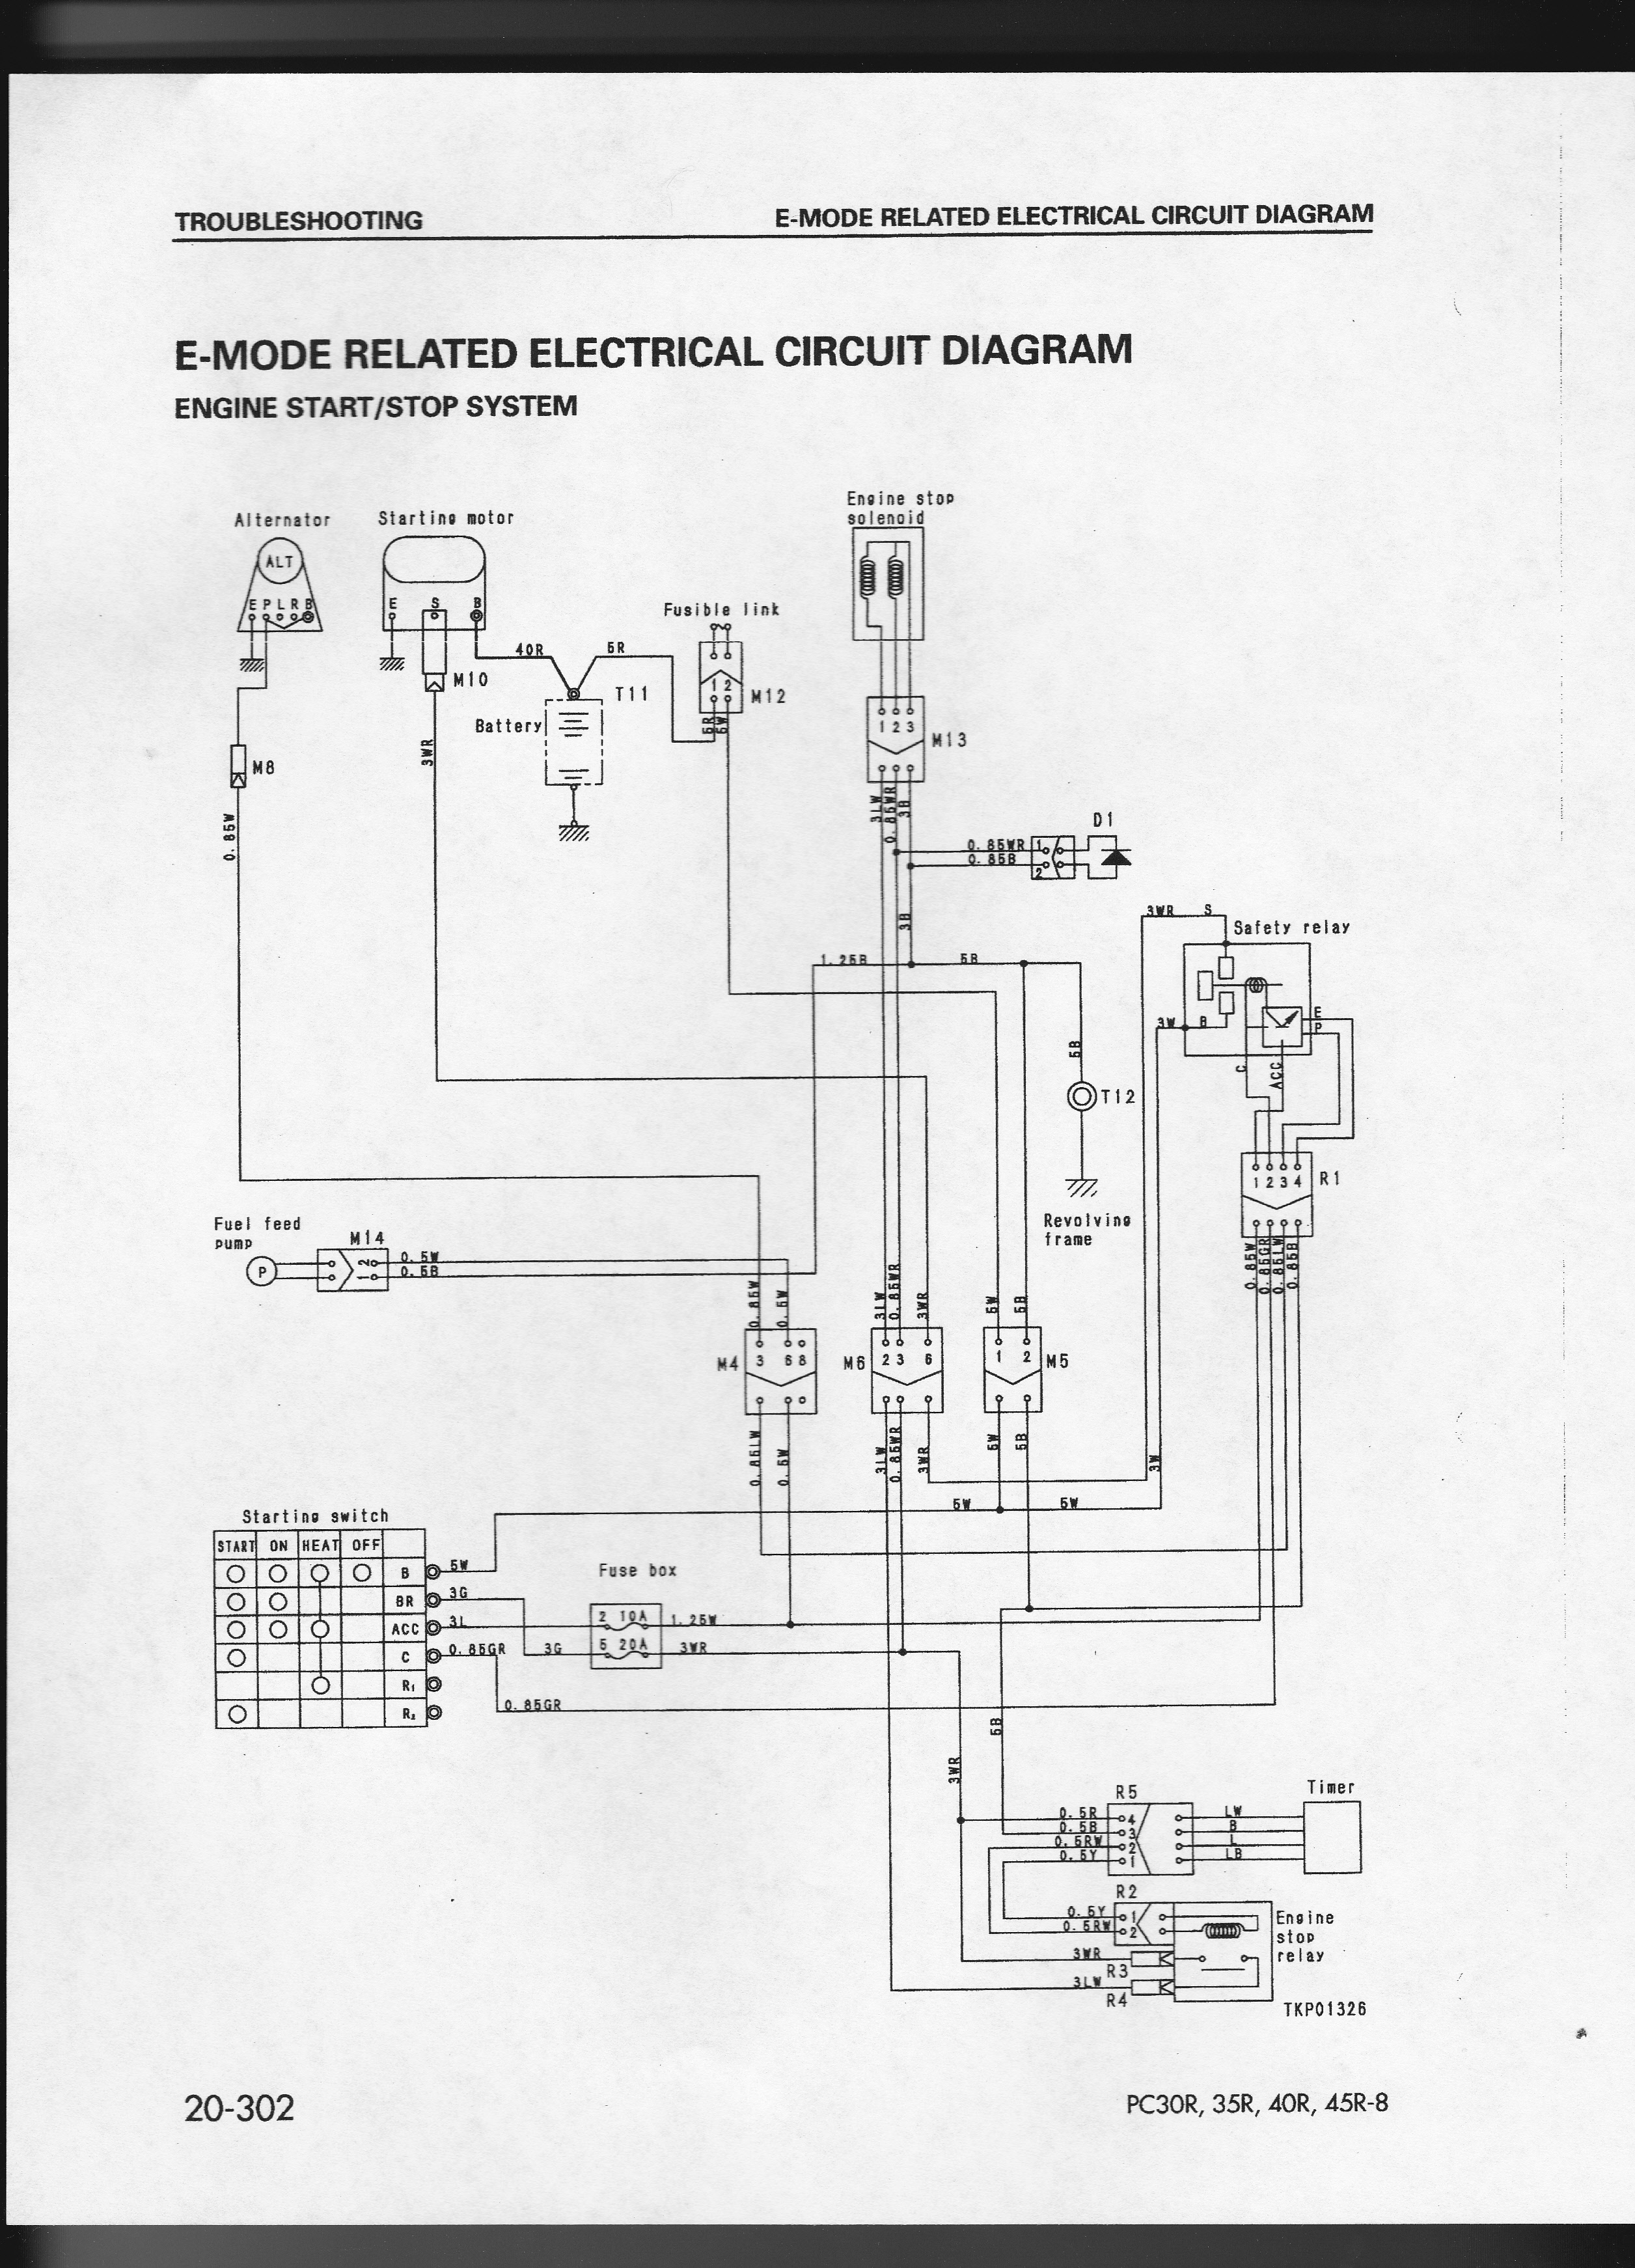 Wiring Diagram For Pc Manual Of Power Cord Get Free Image About D21p 6 Komatsu Dozer Computer Fan Supply